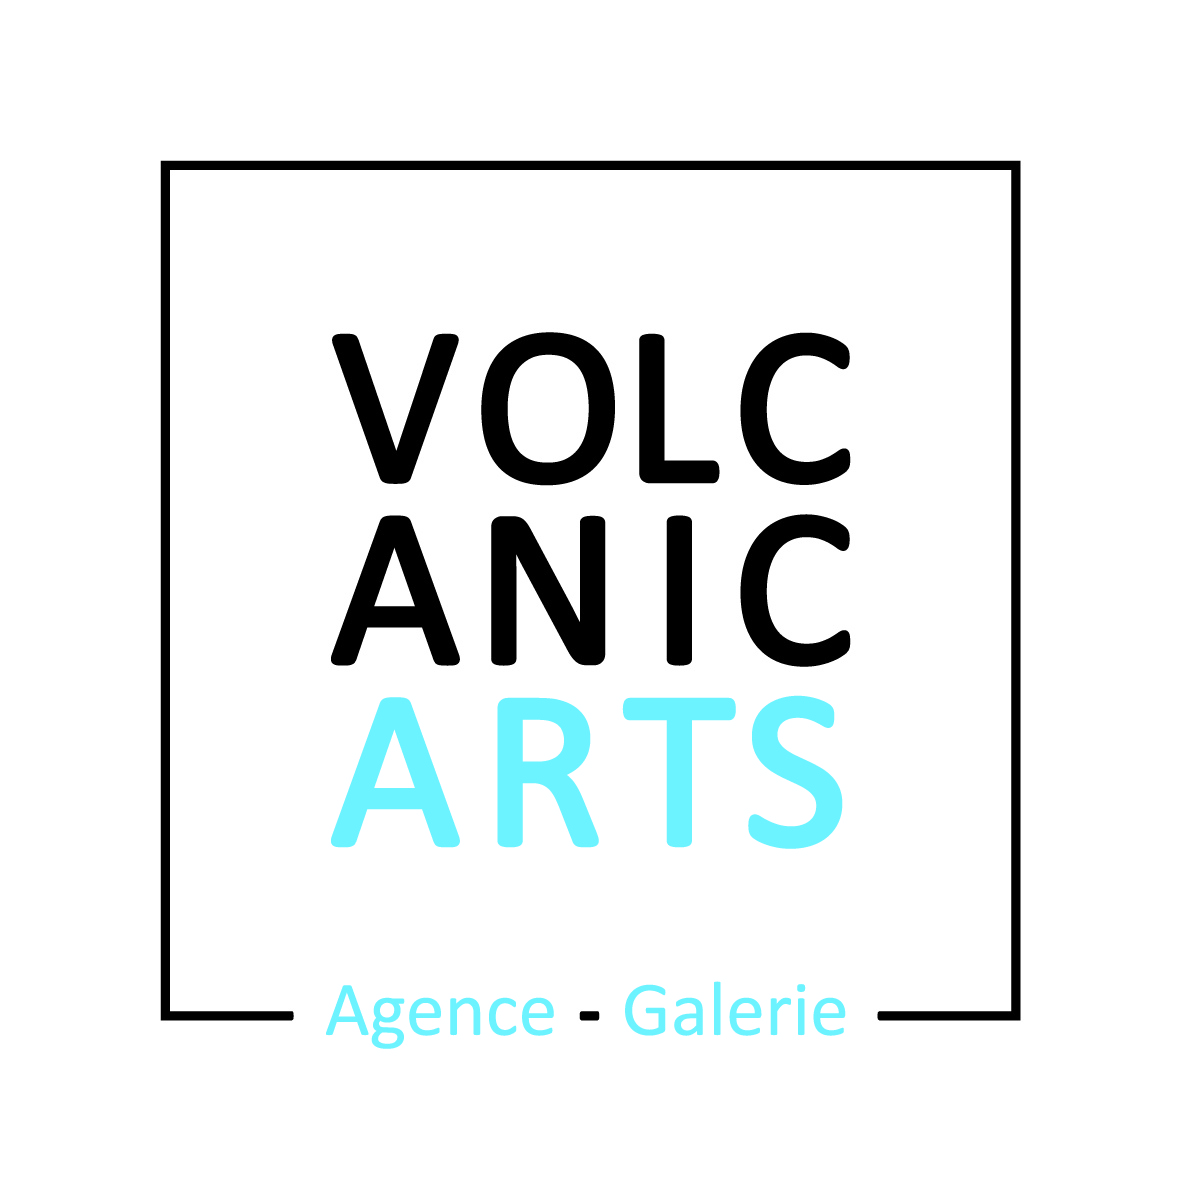 Volcanic'Arts - Agence & Galerie